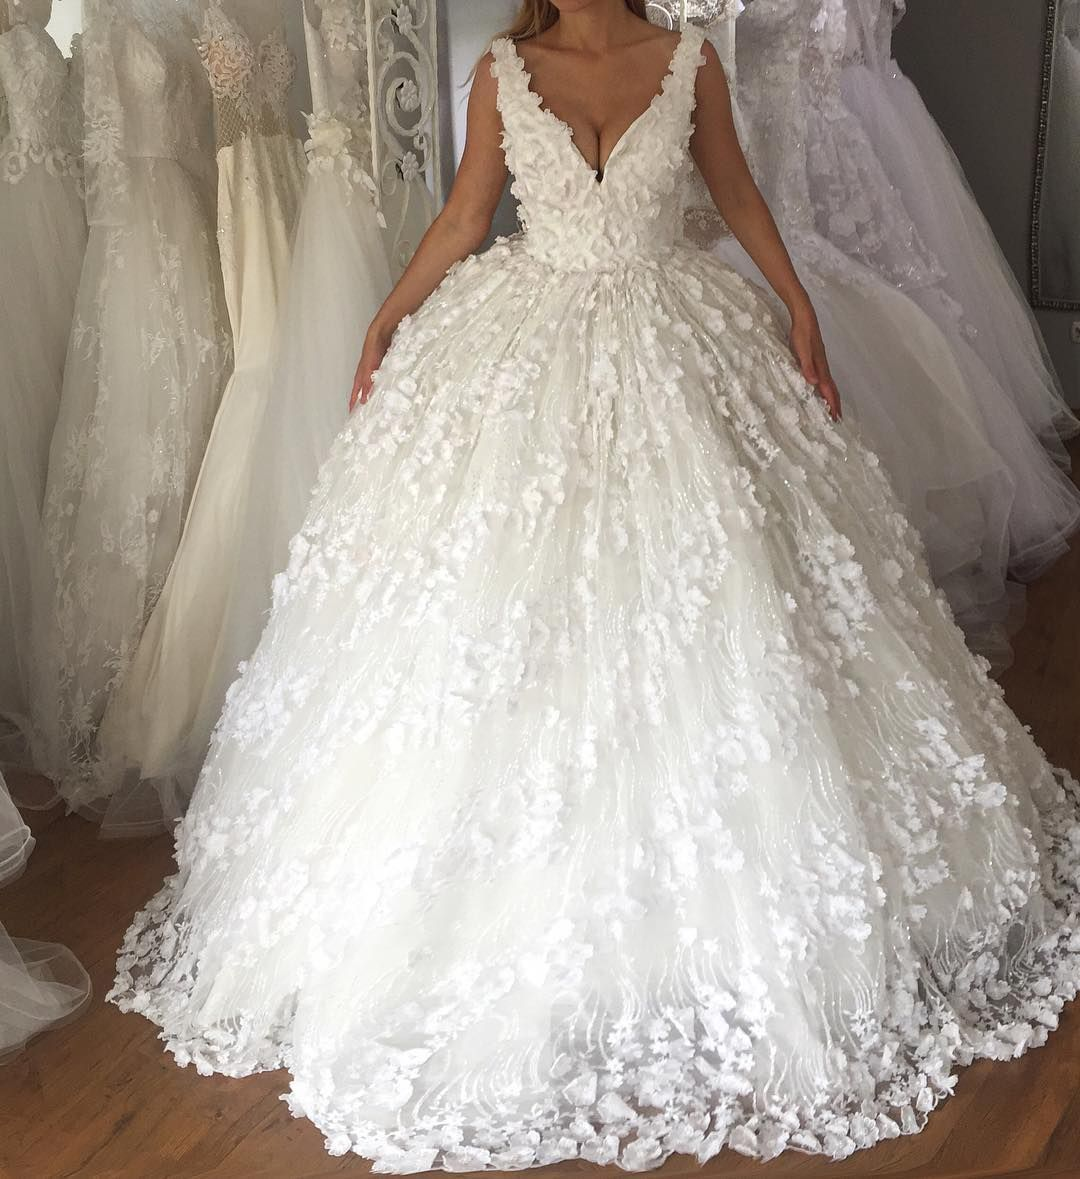 Fashion Designer Facebook L E N A B E R I S H A To Place Your Order Whatsapp 377 44 Bridal Gowns Vintage Different Wedding Dresses Retro Wedding Dresses